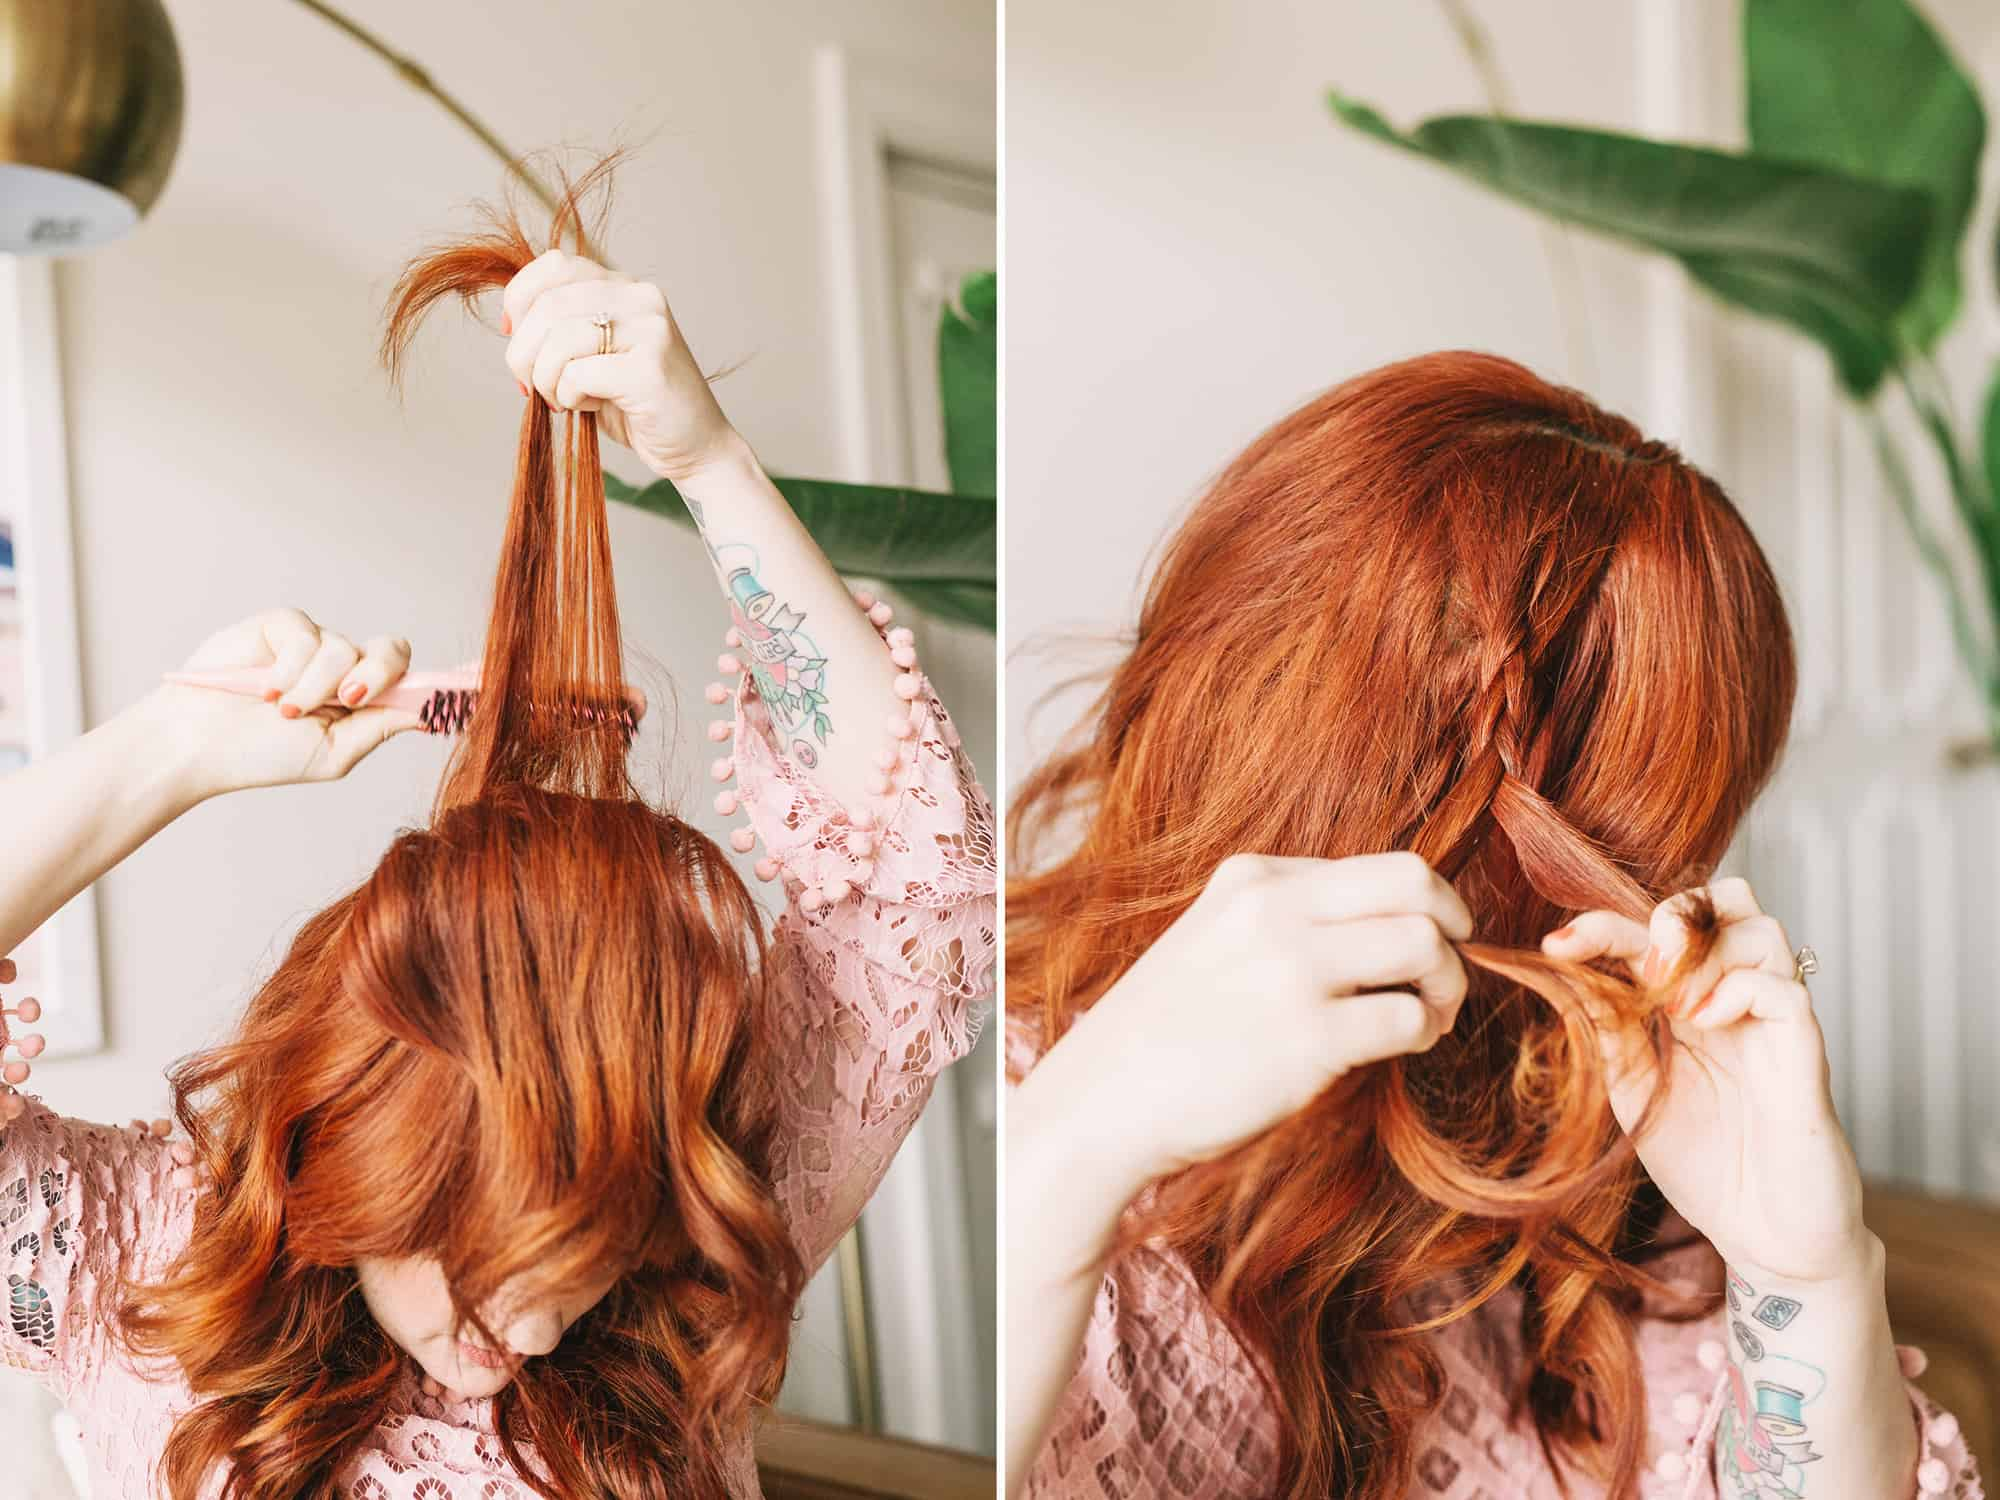 Braided wavy boho hair tutorial a beautiful mess step one tease the top using a teasing brush tease 2 3 layers of hair just an inch or two from your scalp to add volume but not create a full on nest baditri Choice Image